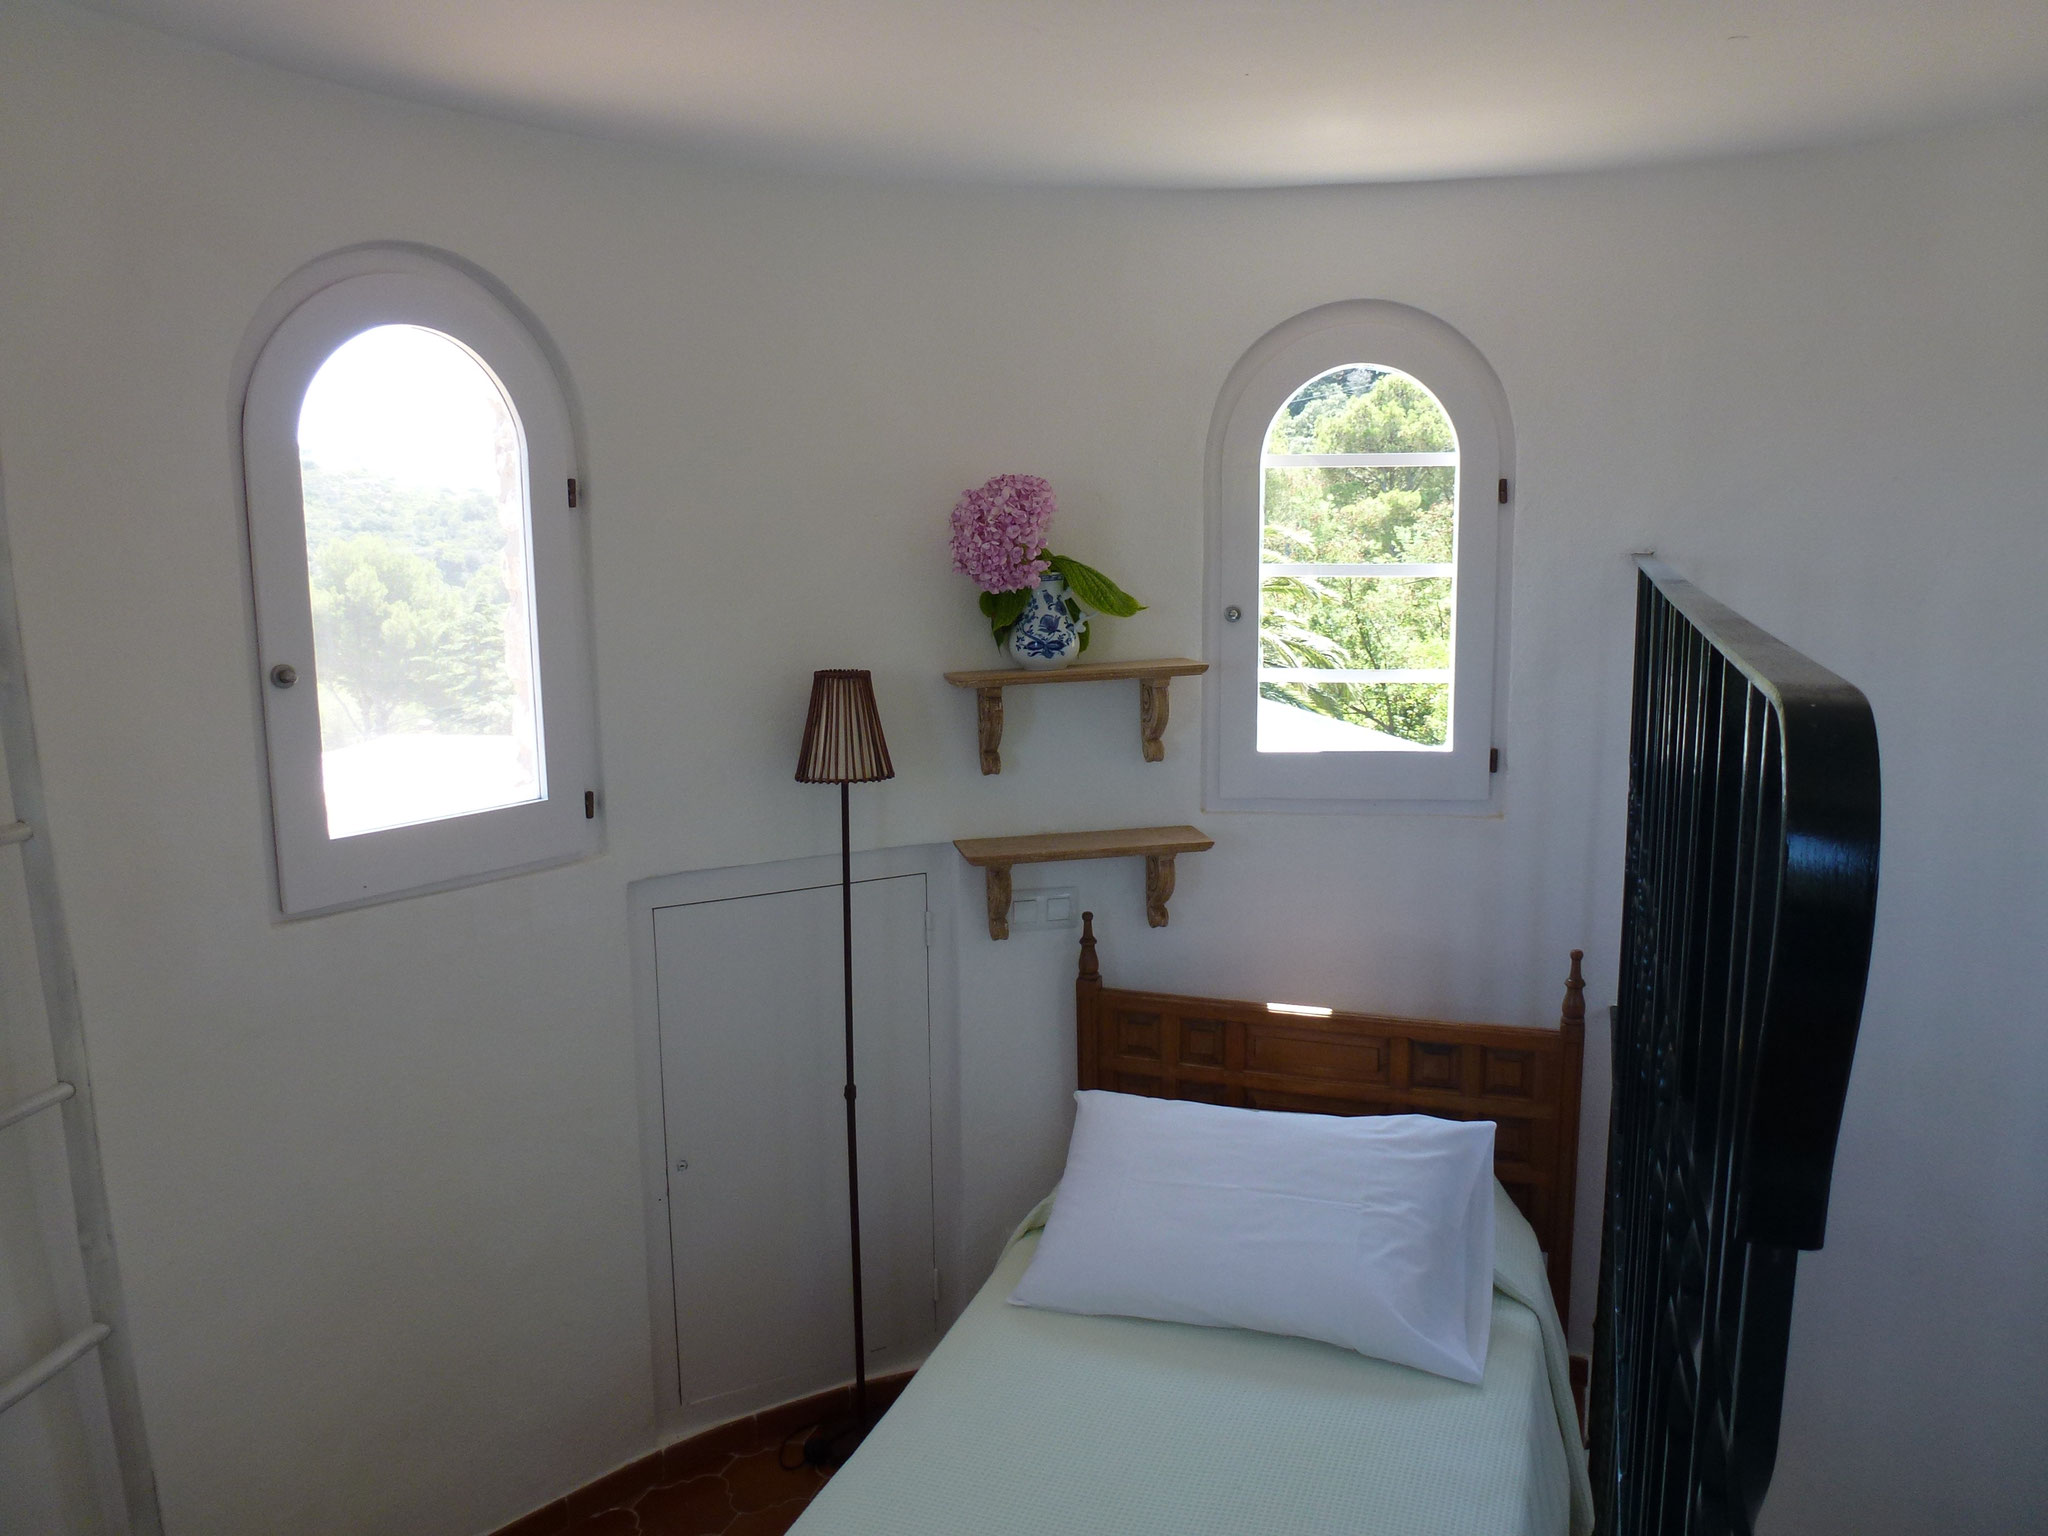 Single bed at the top of the tower